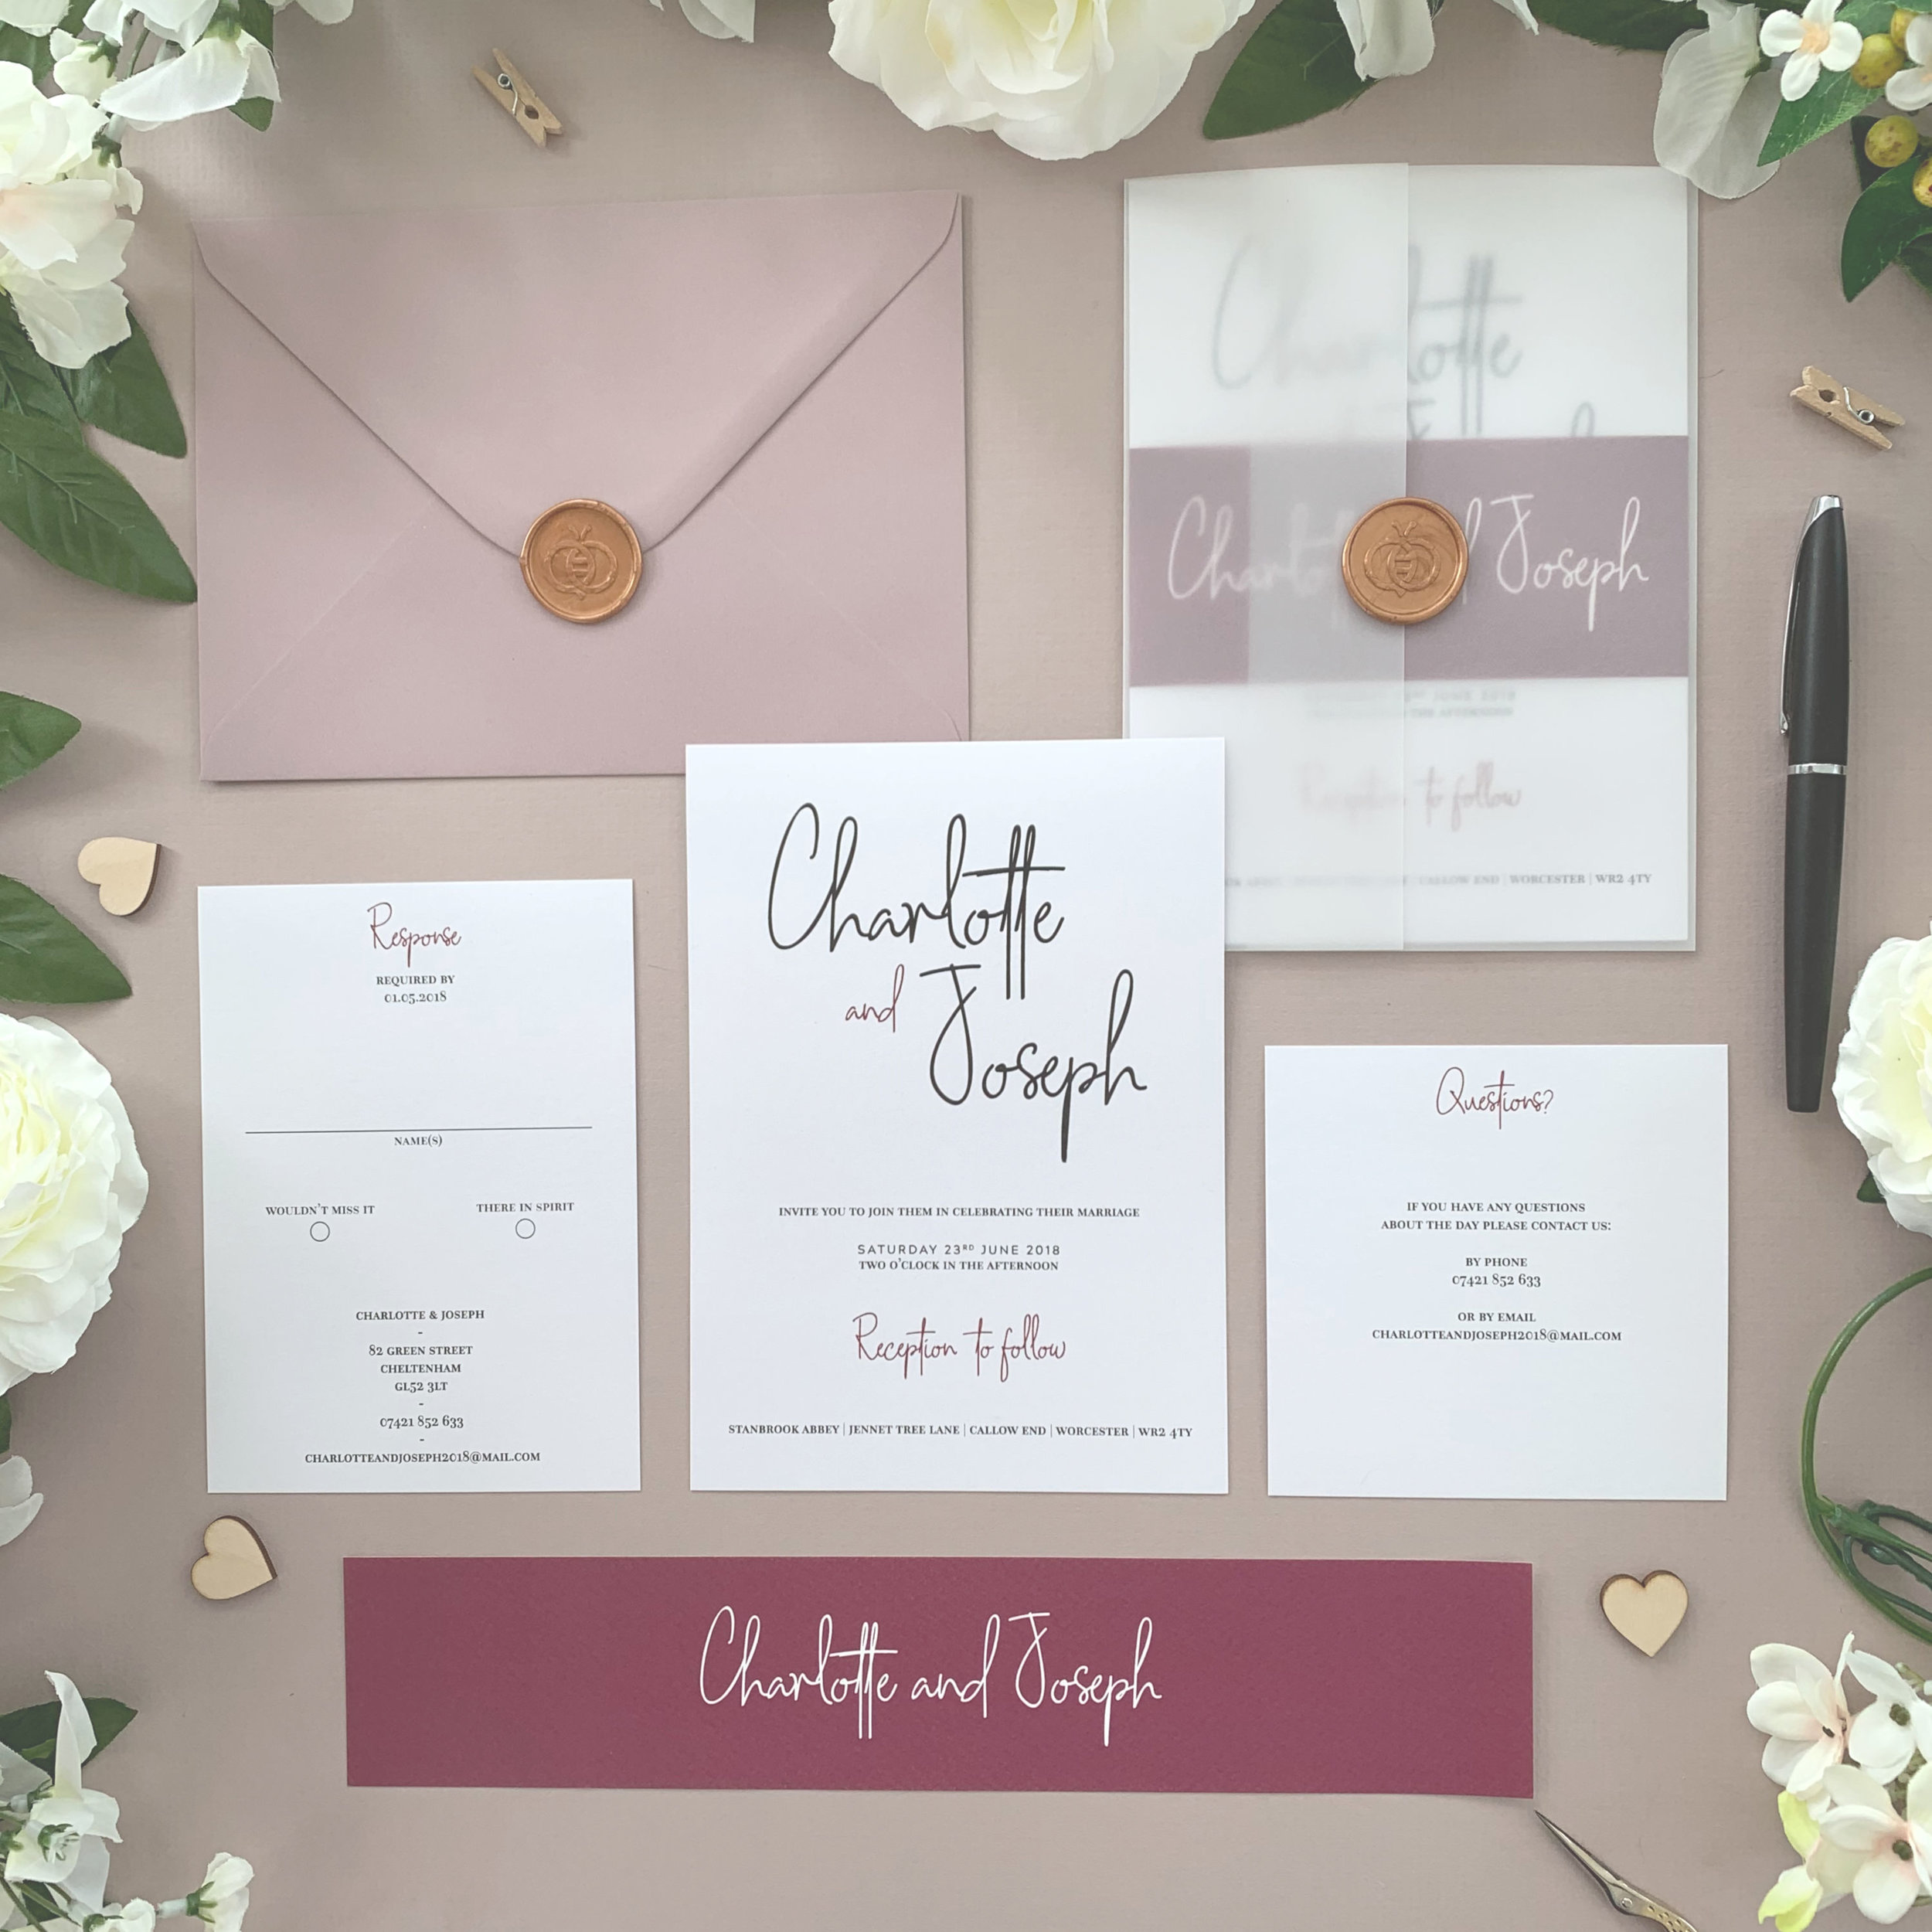 Chancery Lane - One of our most popular classic invitation suites, our Chancery Lane collection is simple and modern, using lovely handwritten typography and equally suited to both muted and colourful schemes.The classic invitation suite is our most popular configuration and hugely versatile. If you don't have much to say or want to keep things simple you can even just order the invitation card on its own, which is an ideal option for evening guests.Most couples opt for a suite of items for day guests which can then be bound, with a choice of a paper belly band, vellum jacket, sticker or wax seal to keep multiple cards beautifully neat and together.Coloured envelopes are available, in addition to printing of guest names and envelopes to make the process even easier.